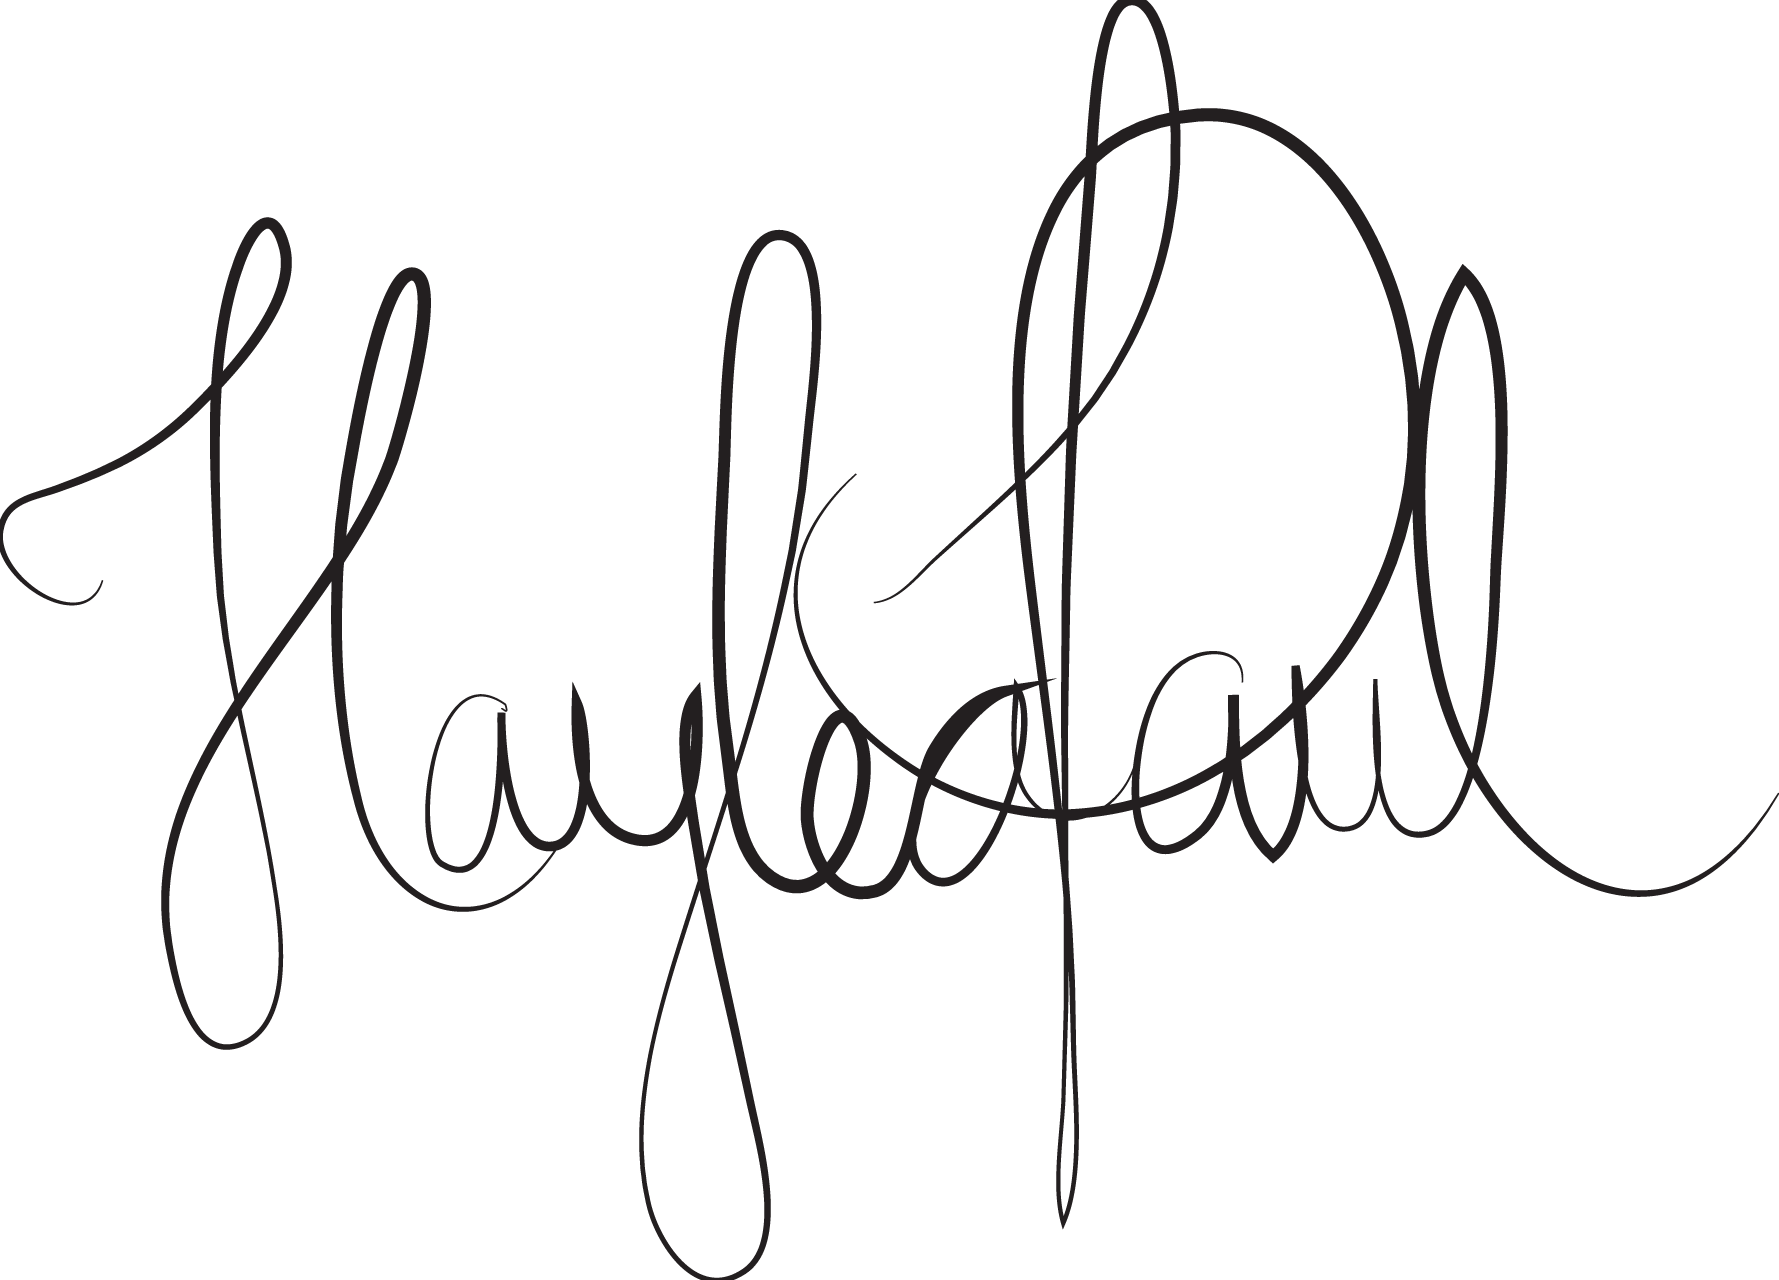 haylea paul Signature